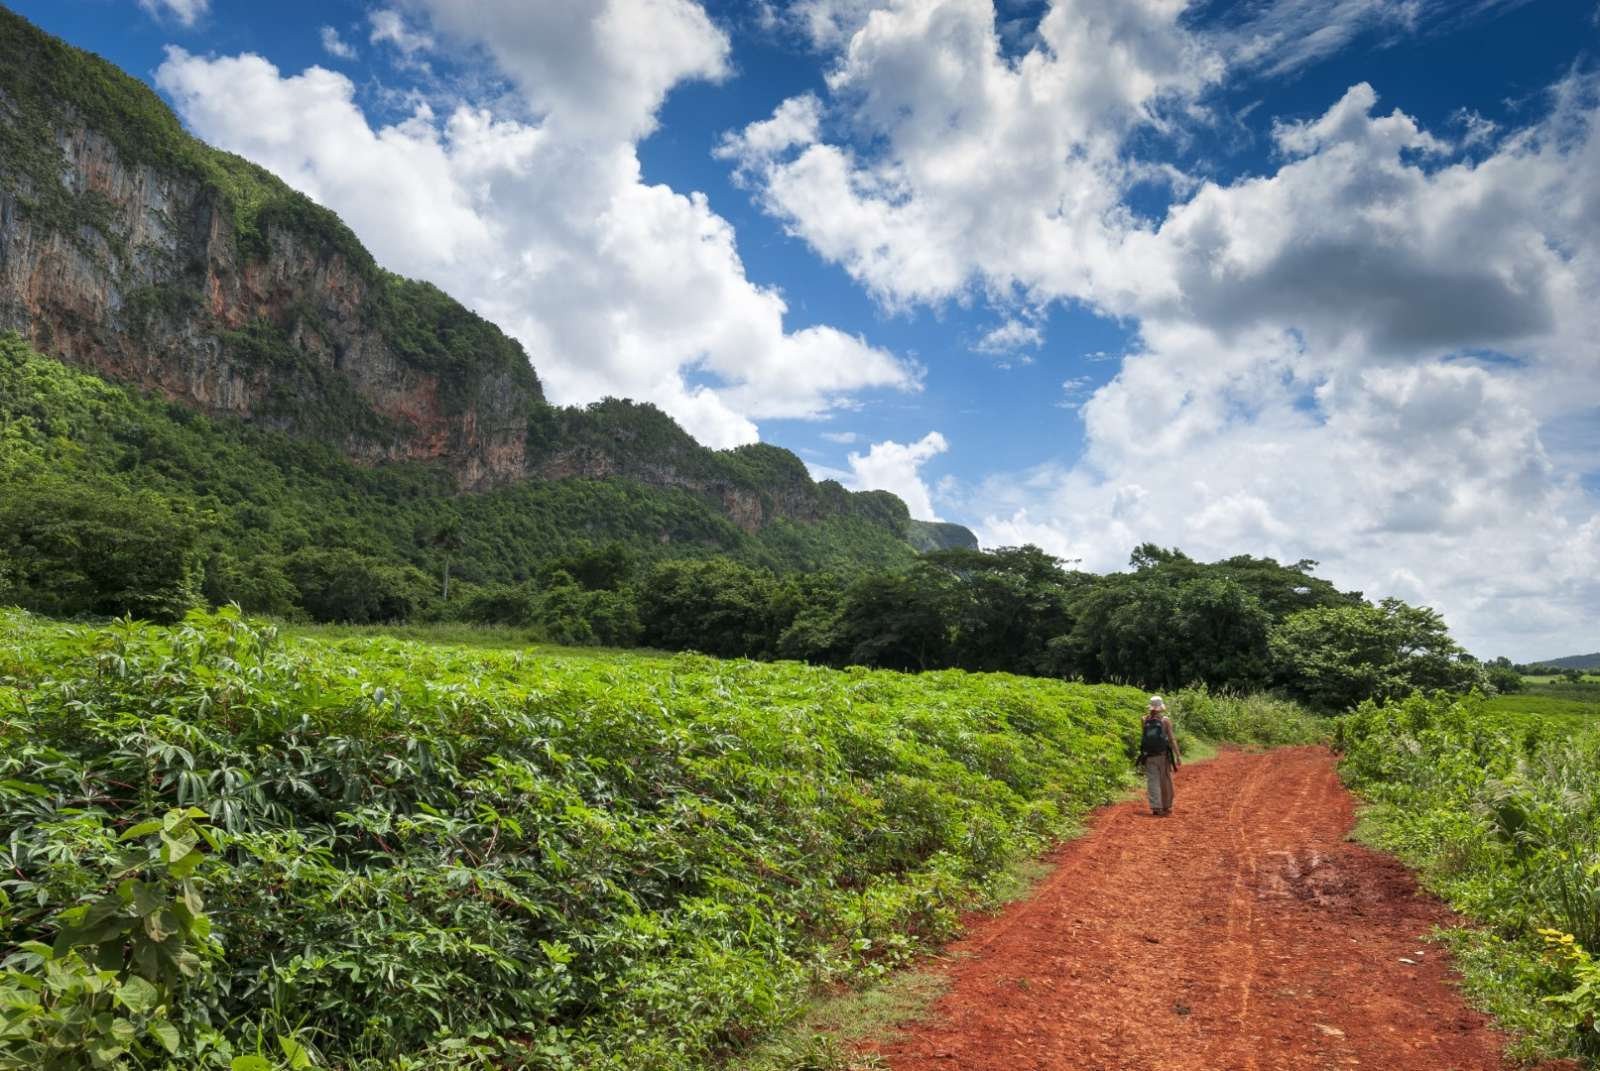 Hiking in the Vinales Valley, Cuba